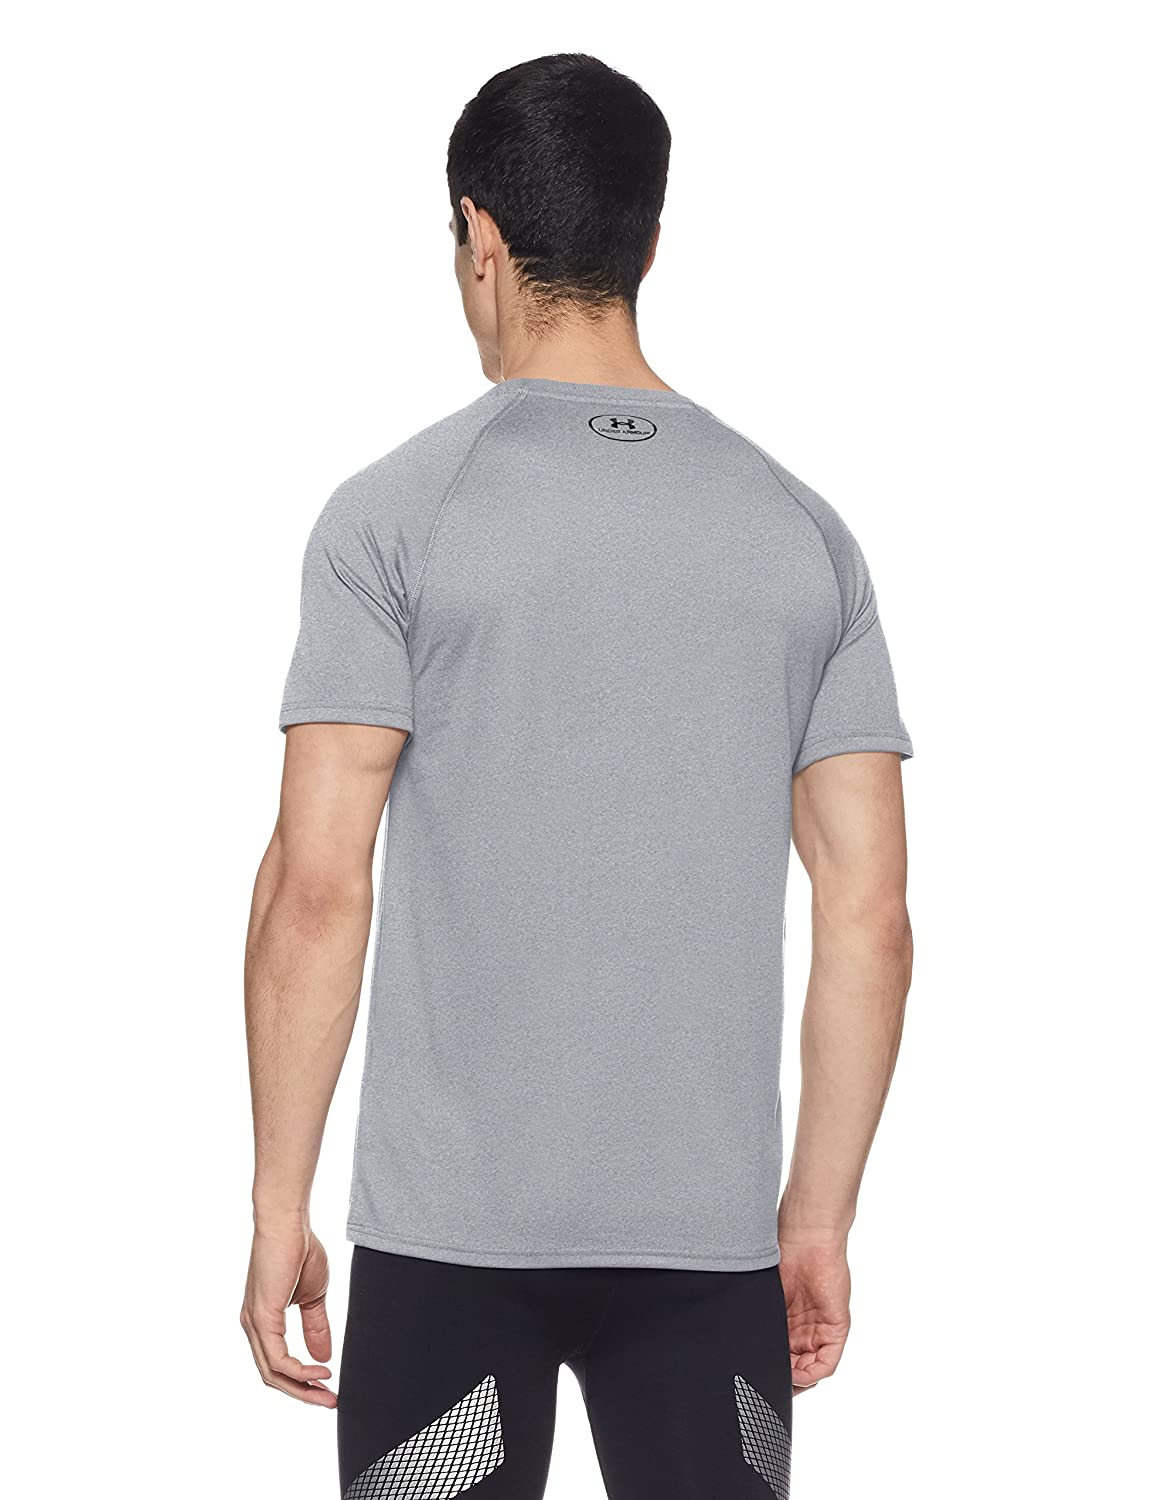 7cca26b6b08d35 Amazon.com   Under Armour Men s Tech Short Sleeve T-Shirt   Clothing